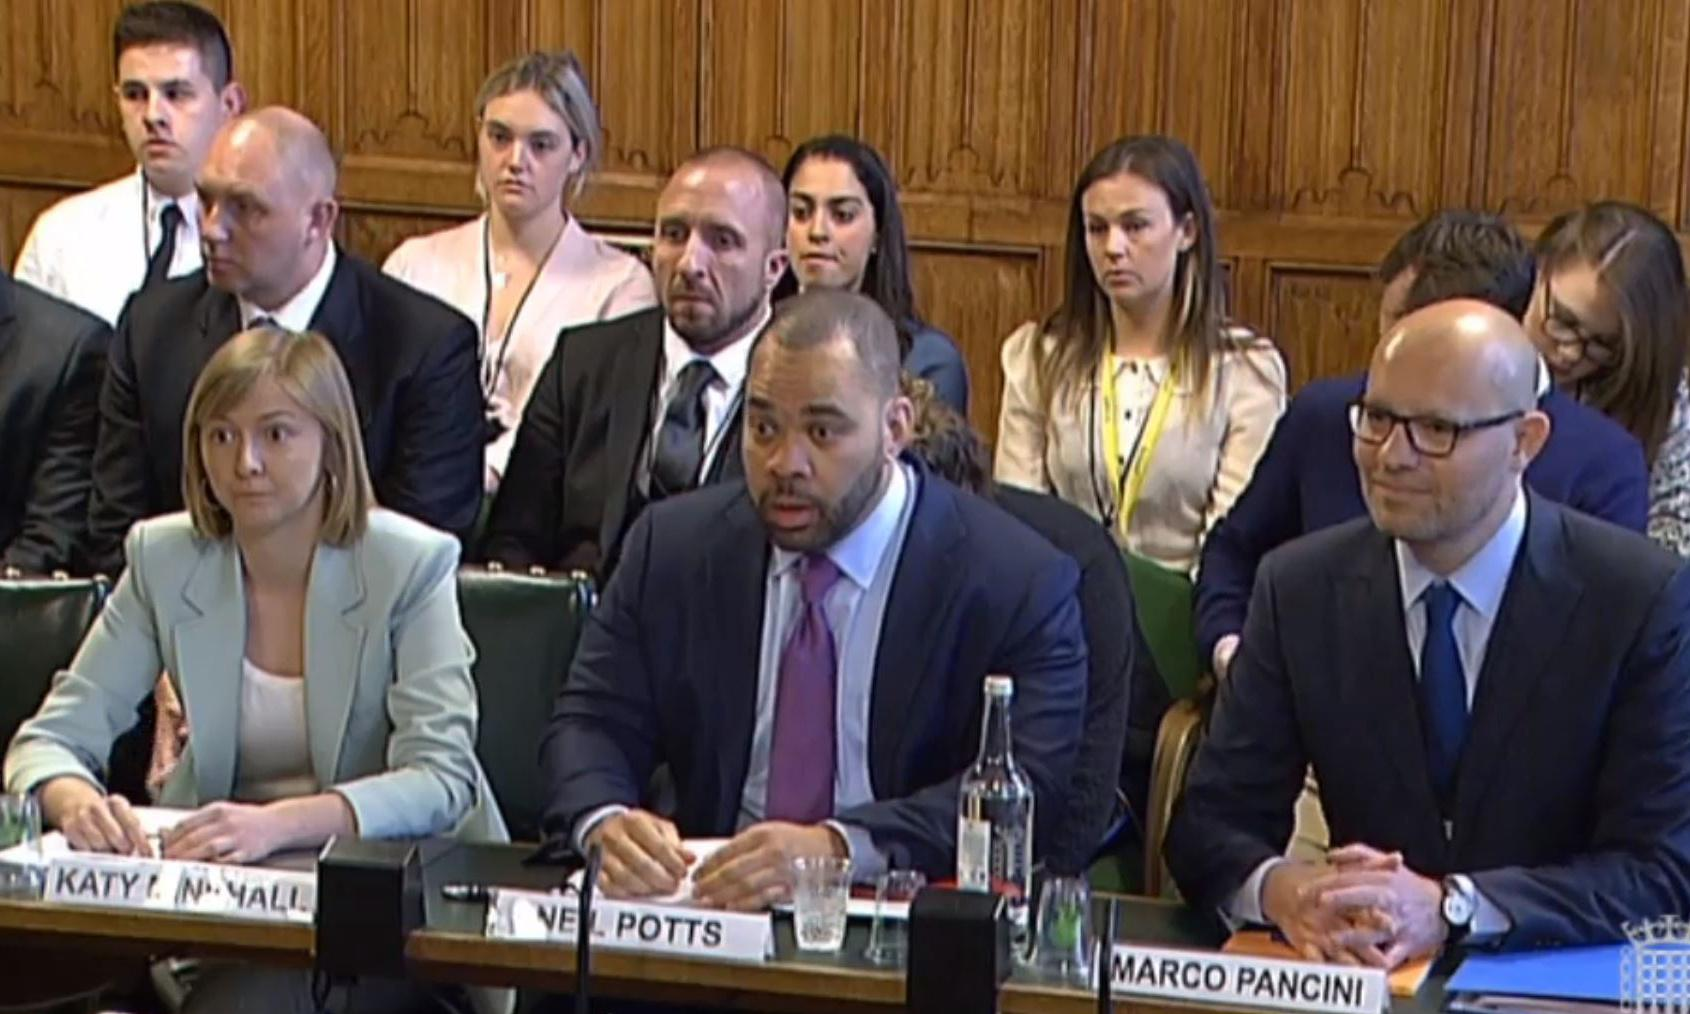 MPs criticise social media firms for failure to report criminal posts